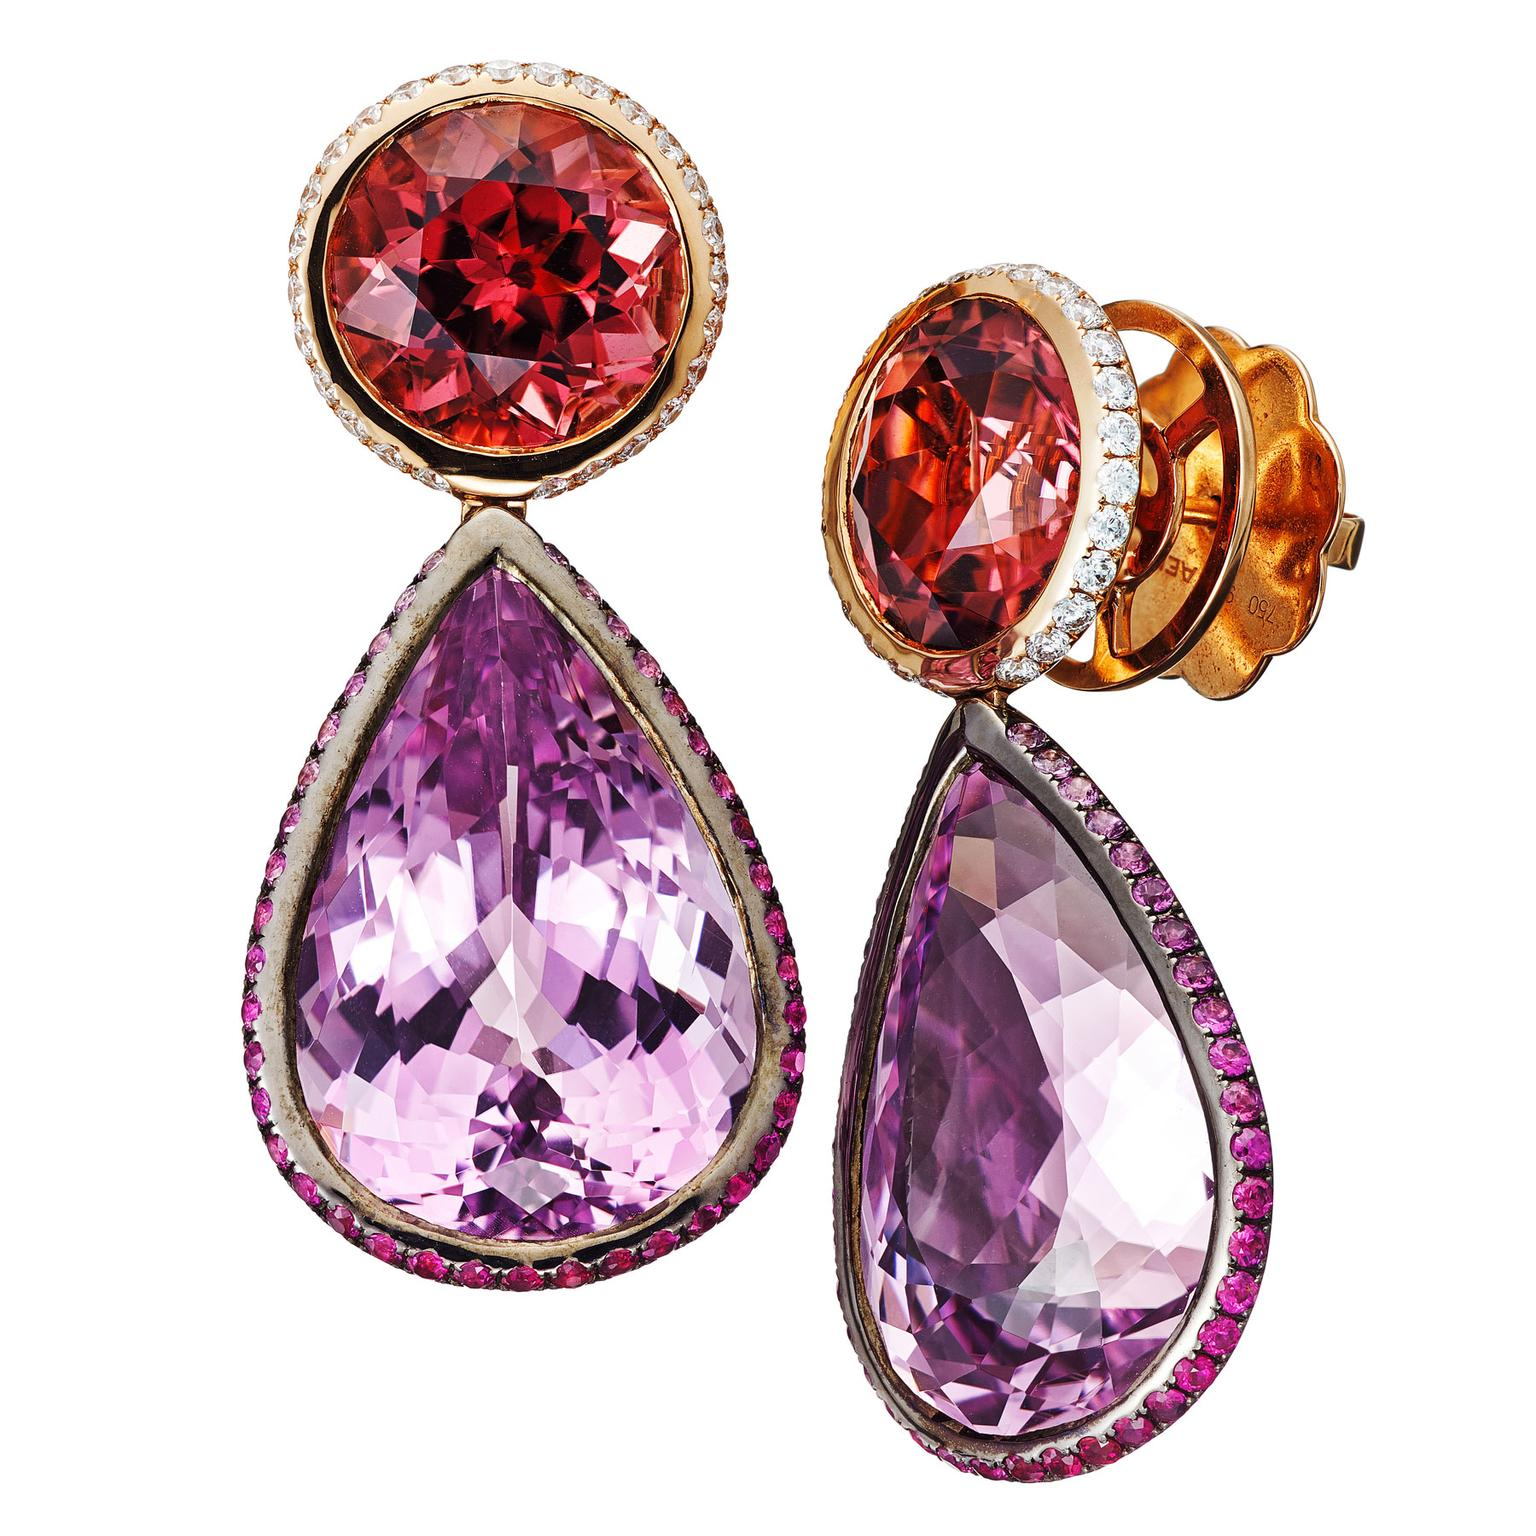 AENEA-Candy-Earrings-Spinel-Kunzite